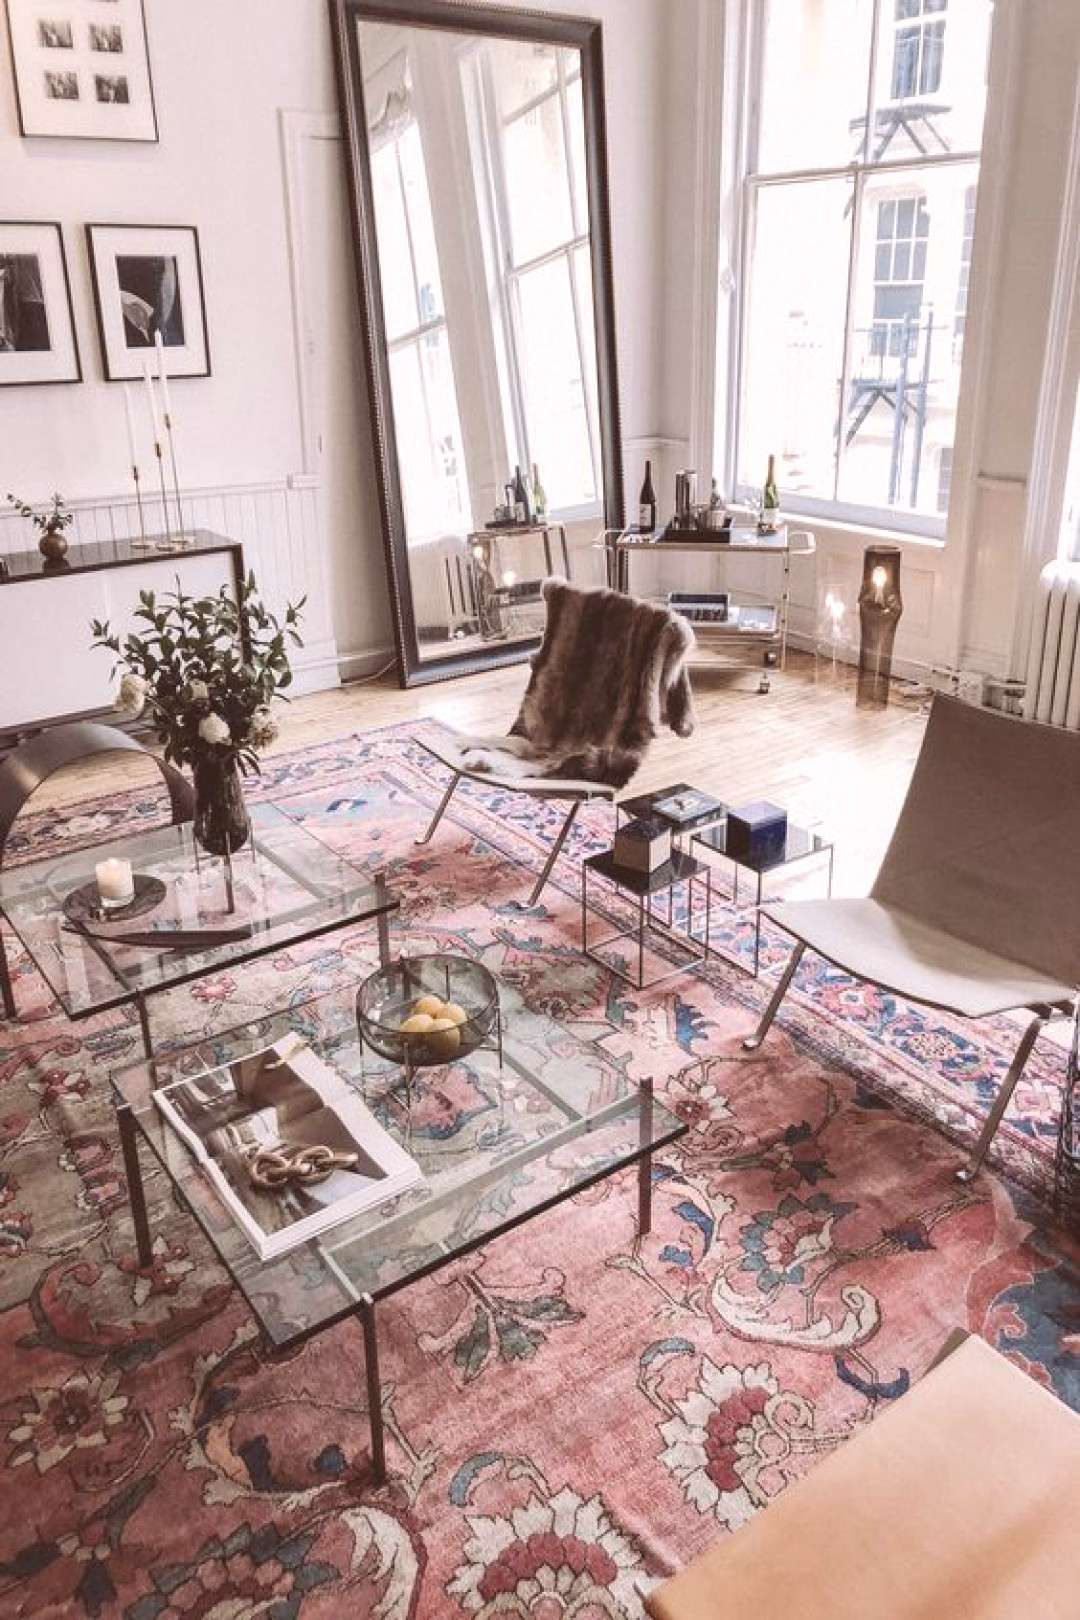 Modern Rugs transforming your home. Living Room Alive is a new concept that is arising, where conte